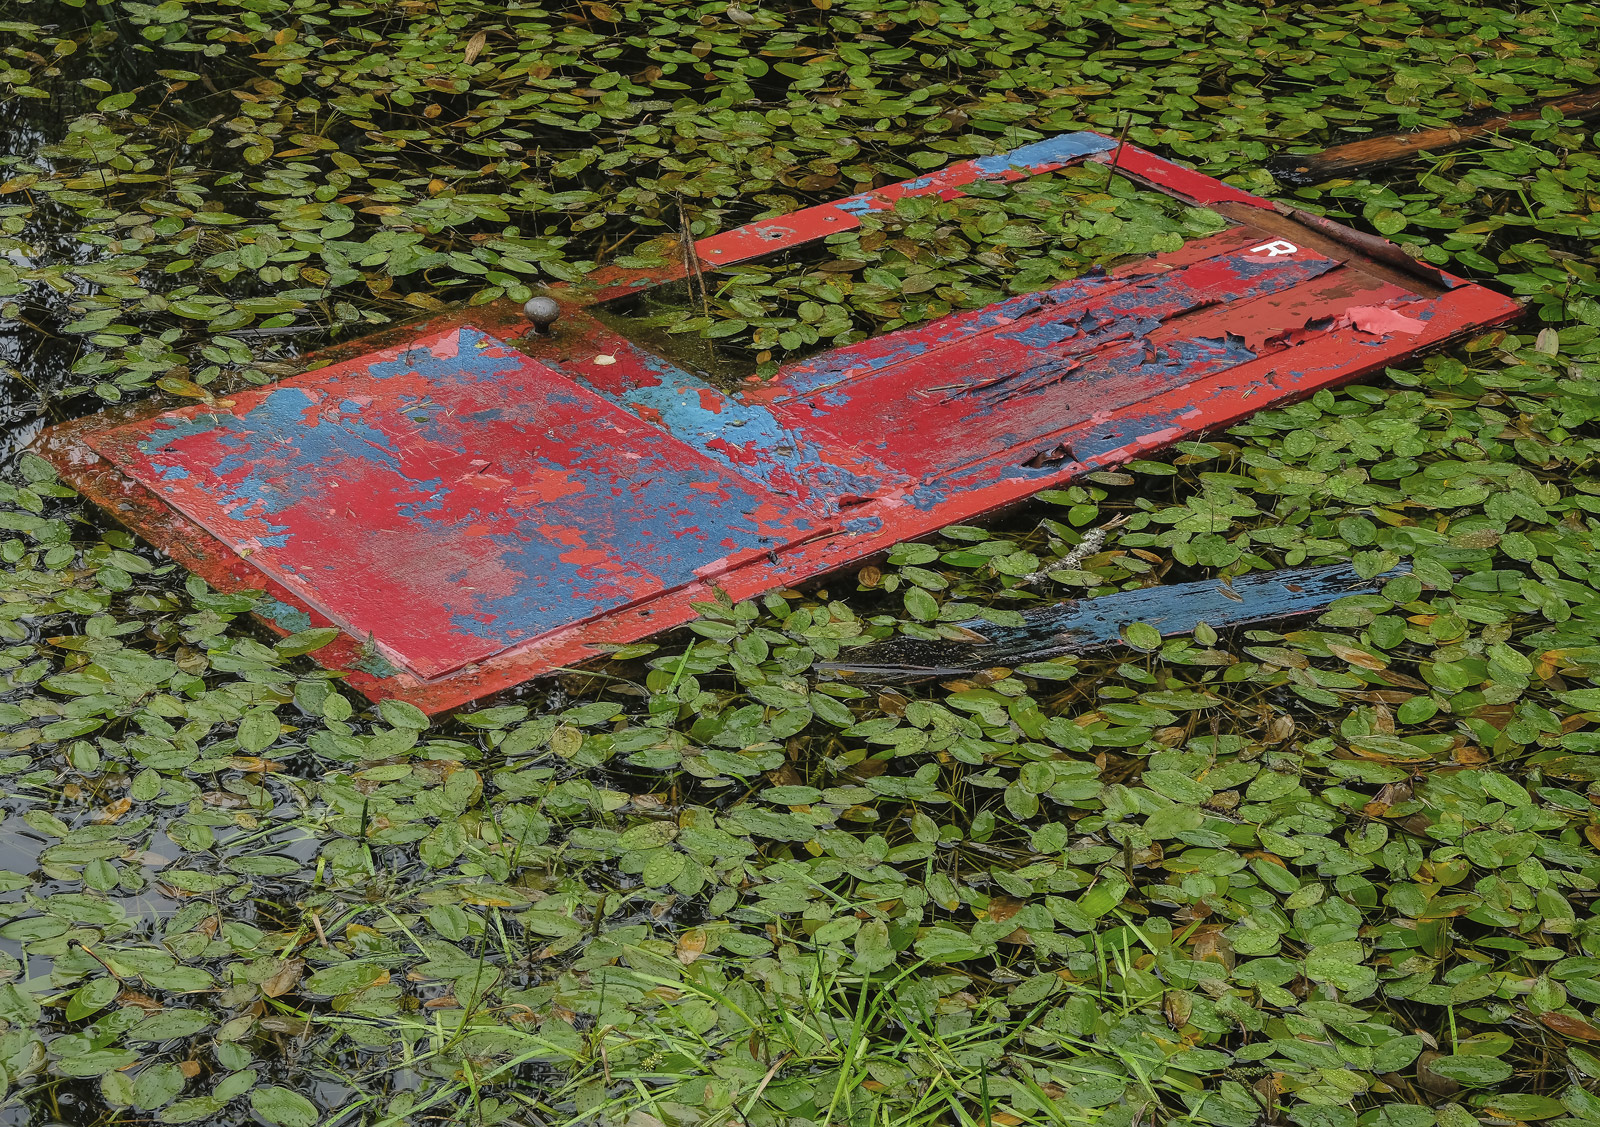 Shed Door, Blairs Loch, Moray, Scotland, discarded, door, boat, shed, red, blue, rhodedendron, leaves, green, colourful, photo